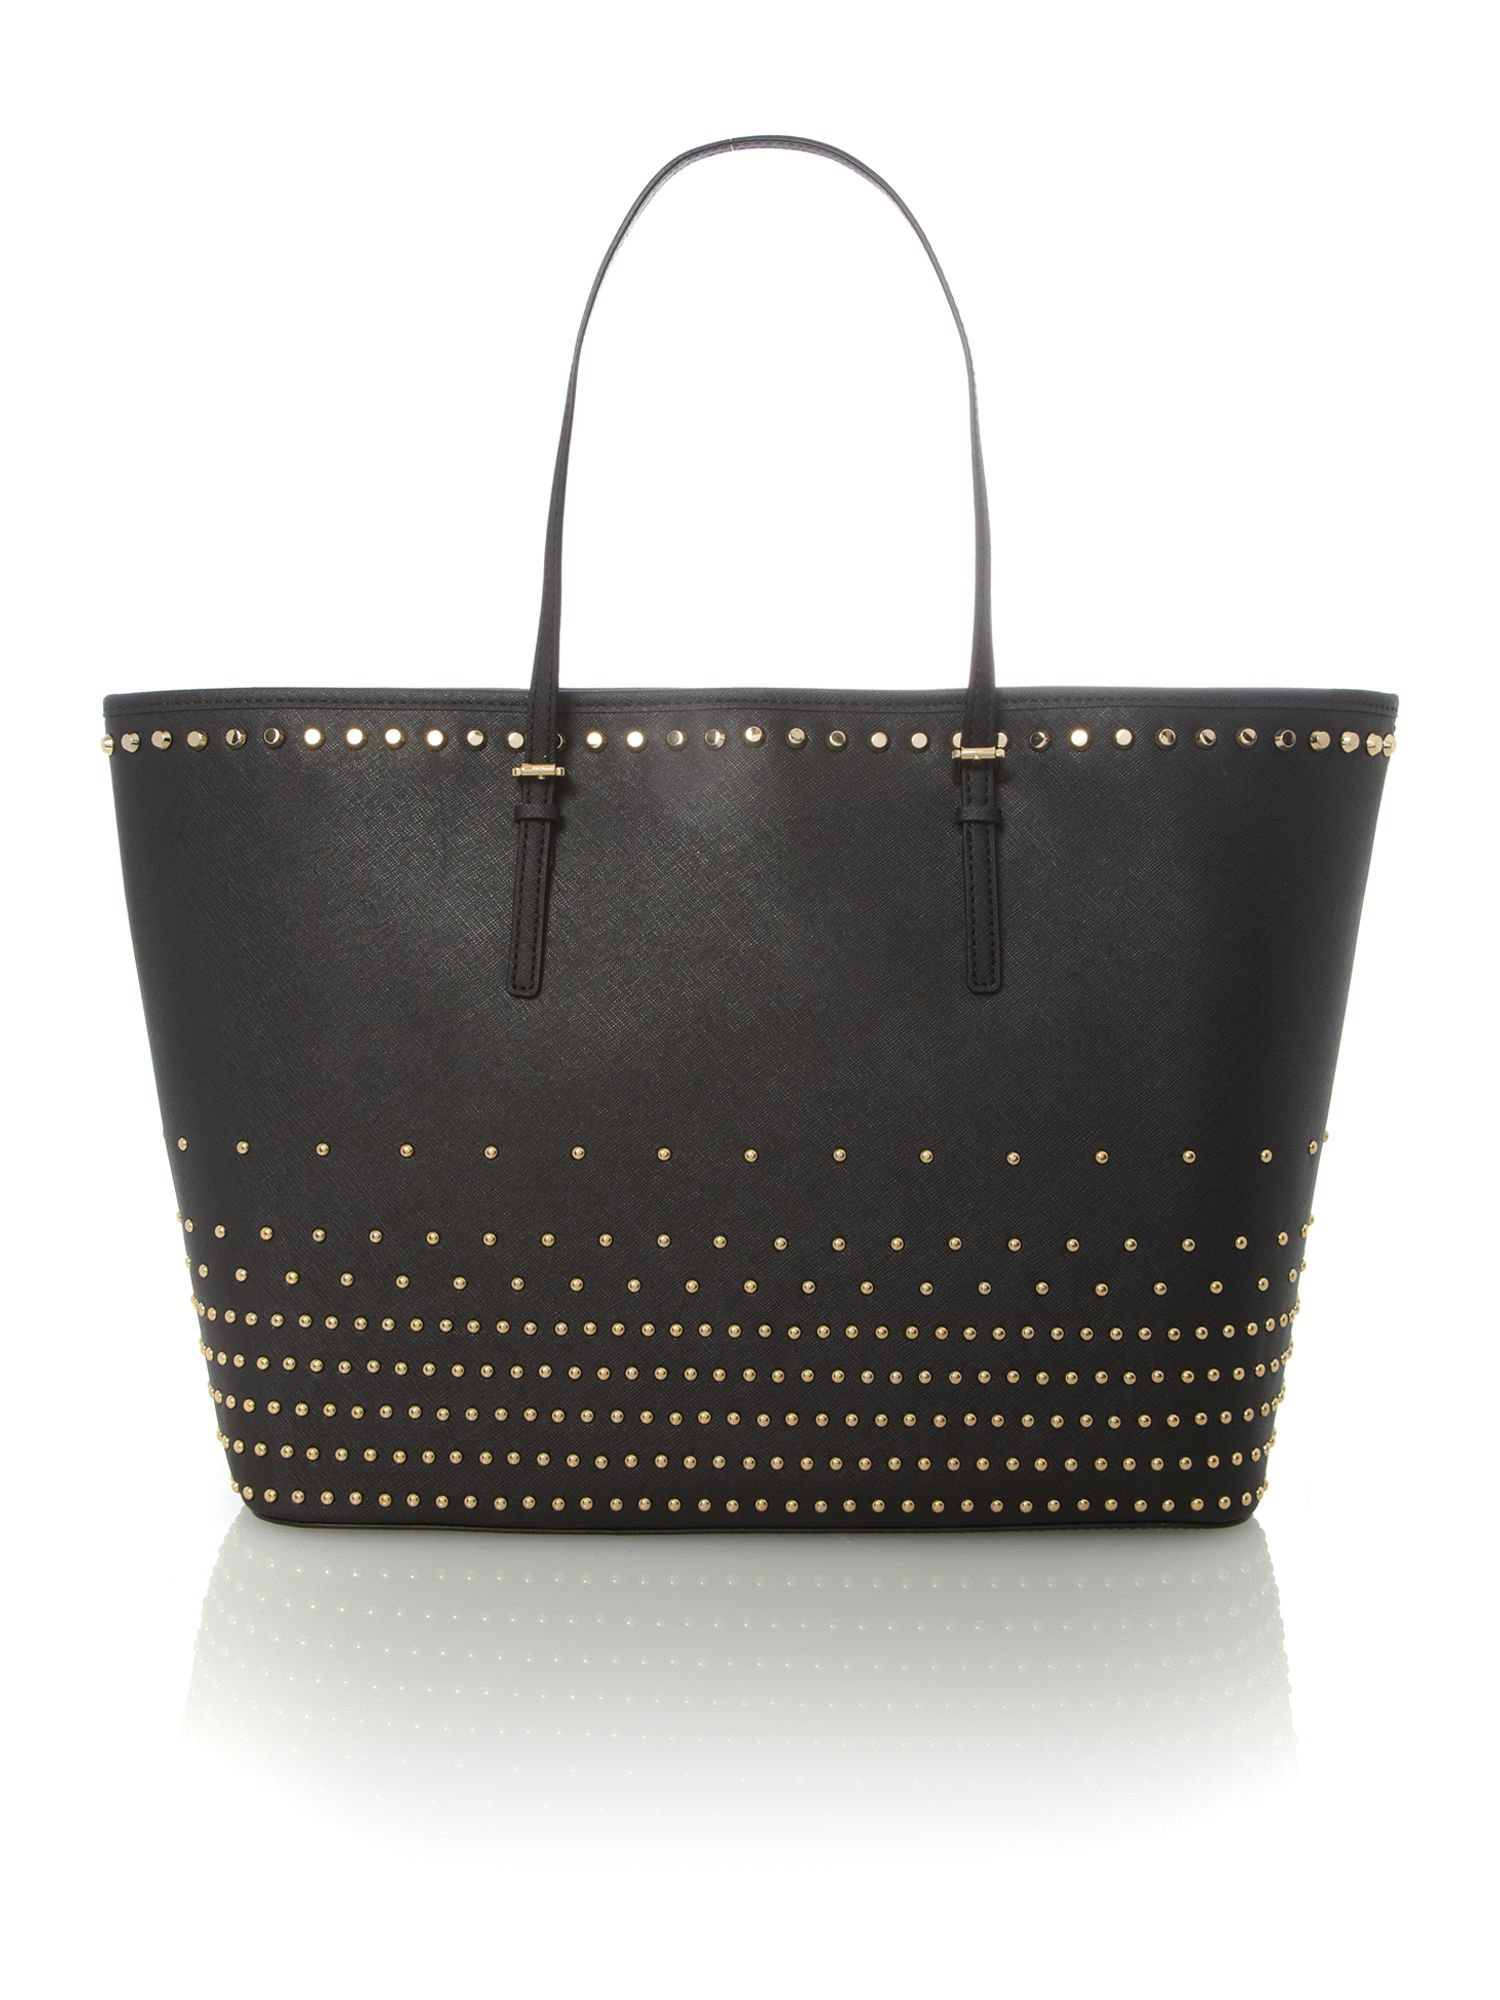 Jet set travel black stud tote bag